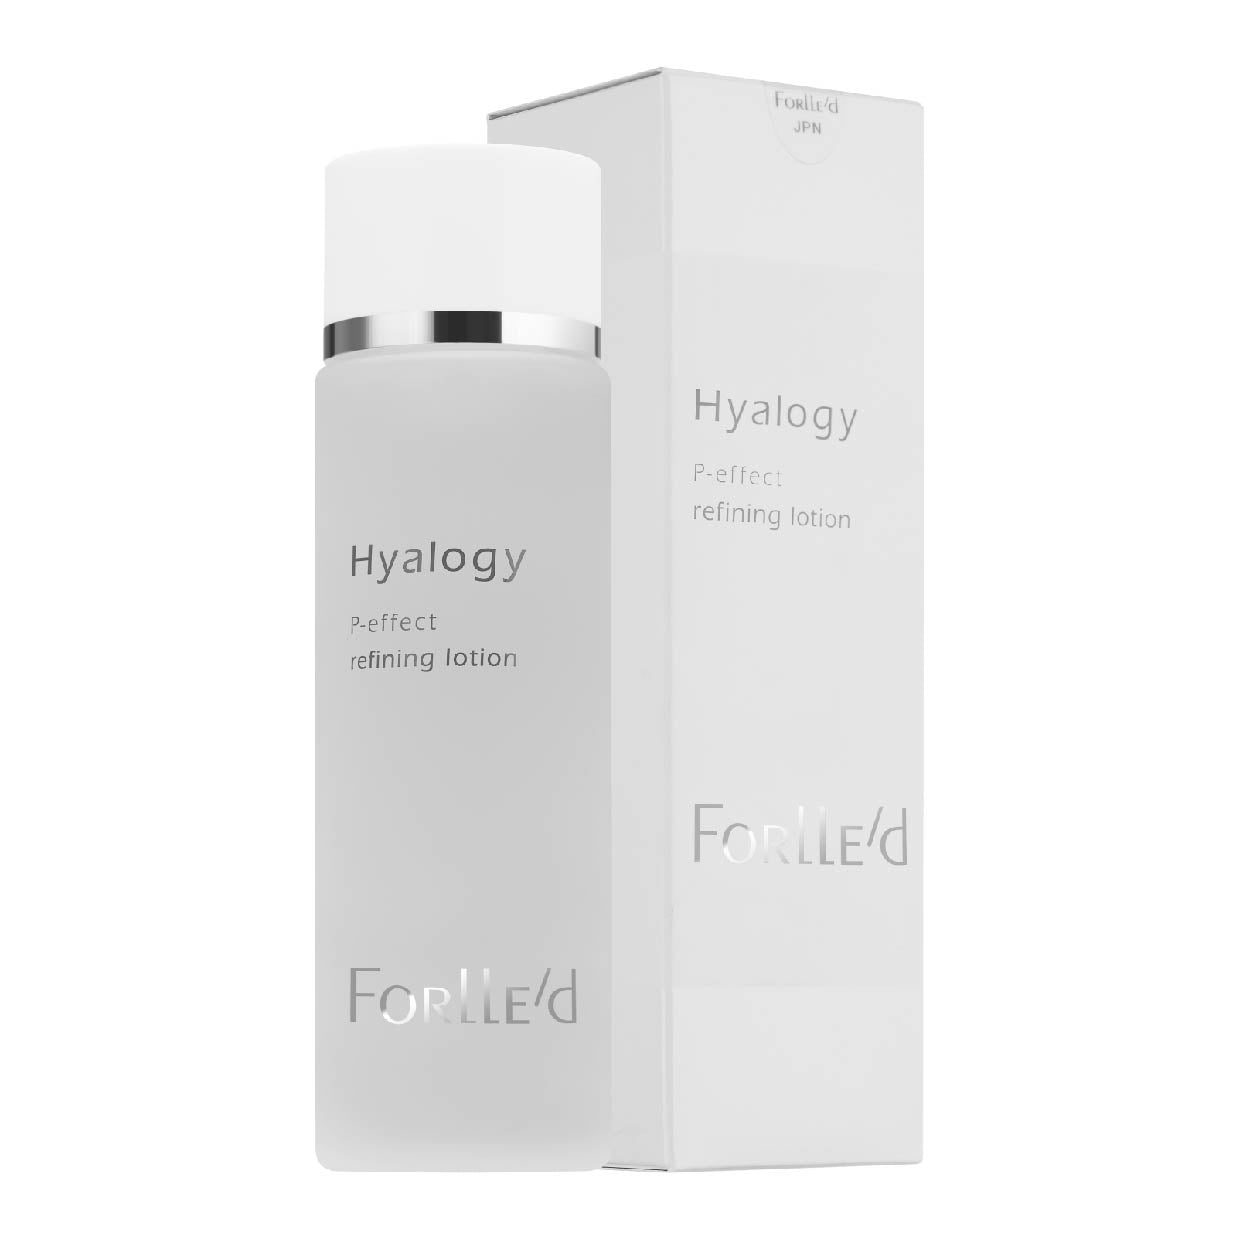 Forlle'd - Hyalogy P-effect Refining Lotion